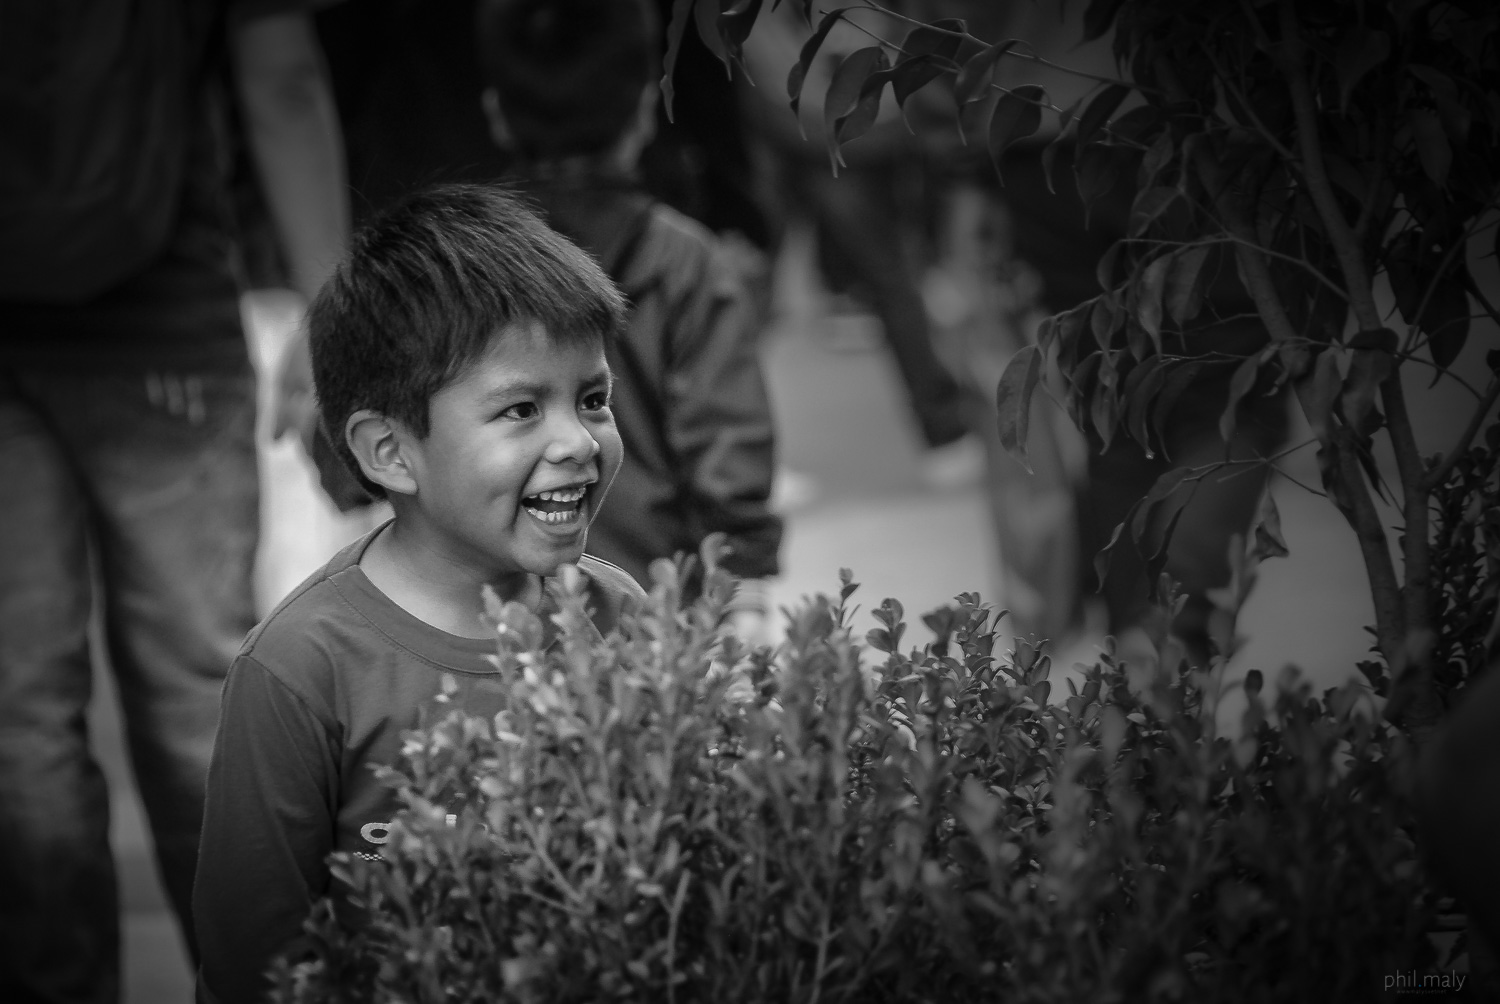 Street portrait of a young boy playing and smiling